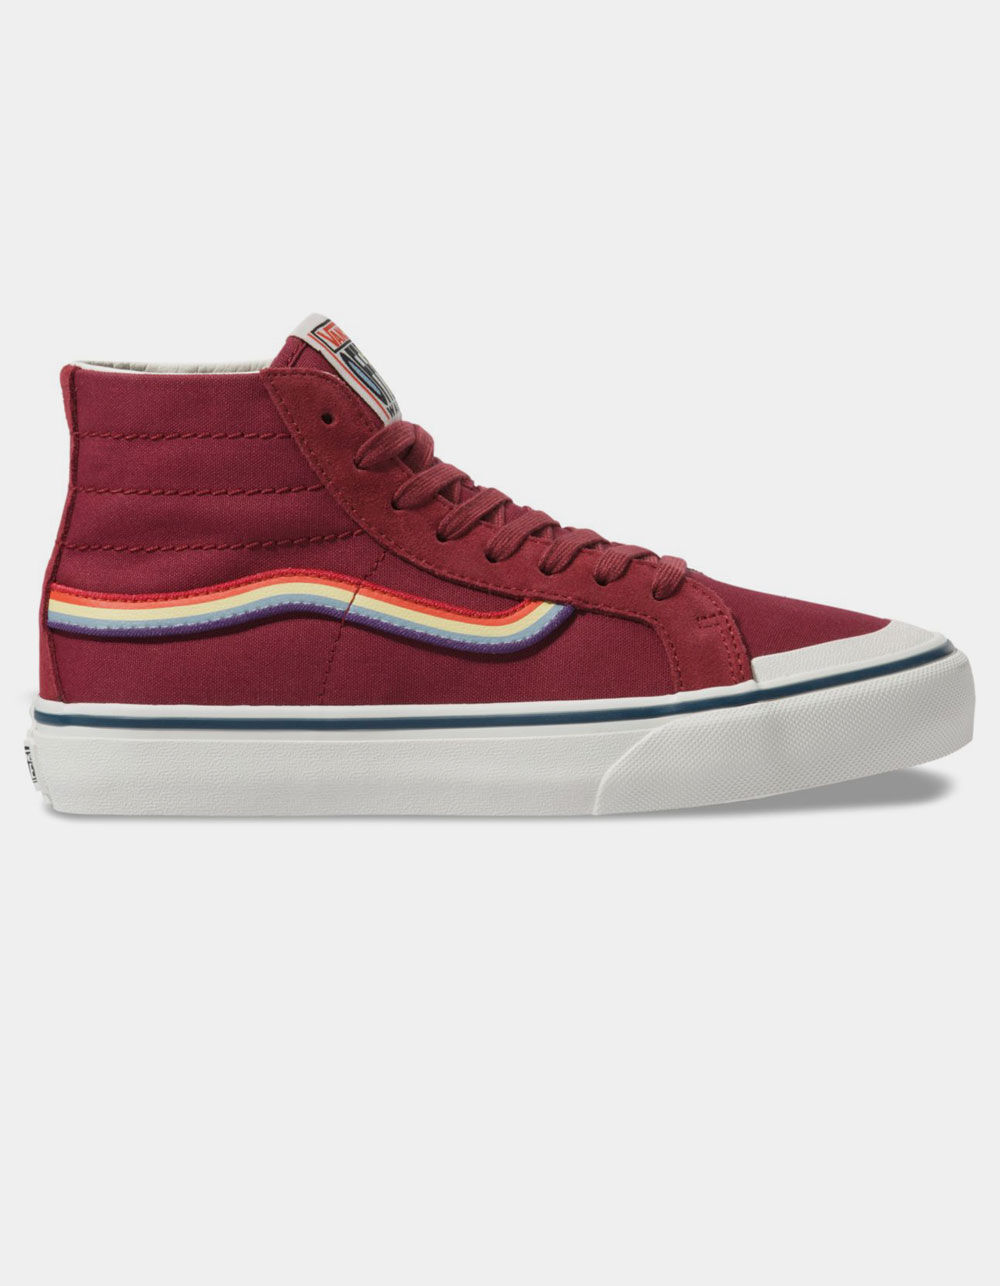 VANS Sk8-Hi 138 Decon Rad Rainbow Shoes